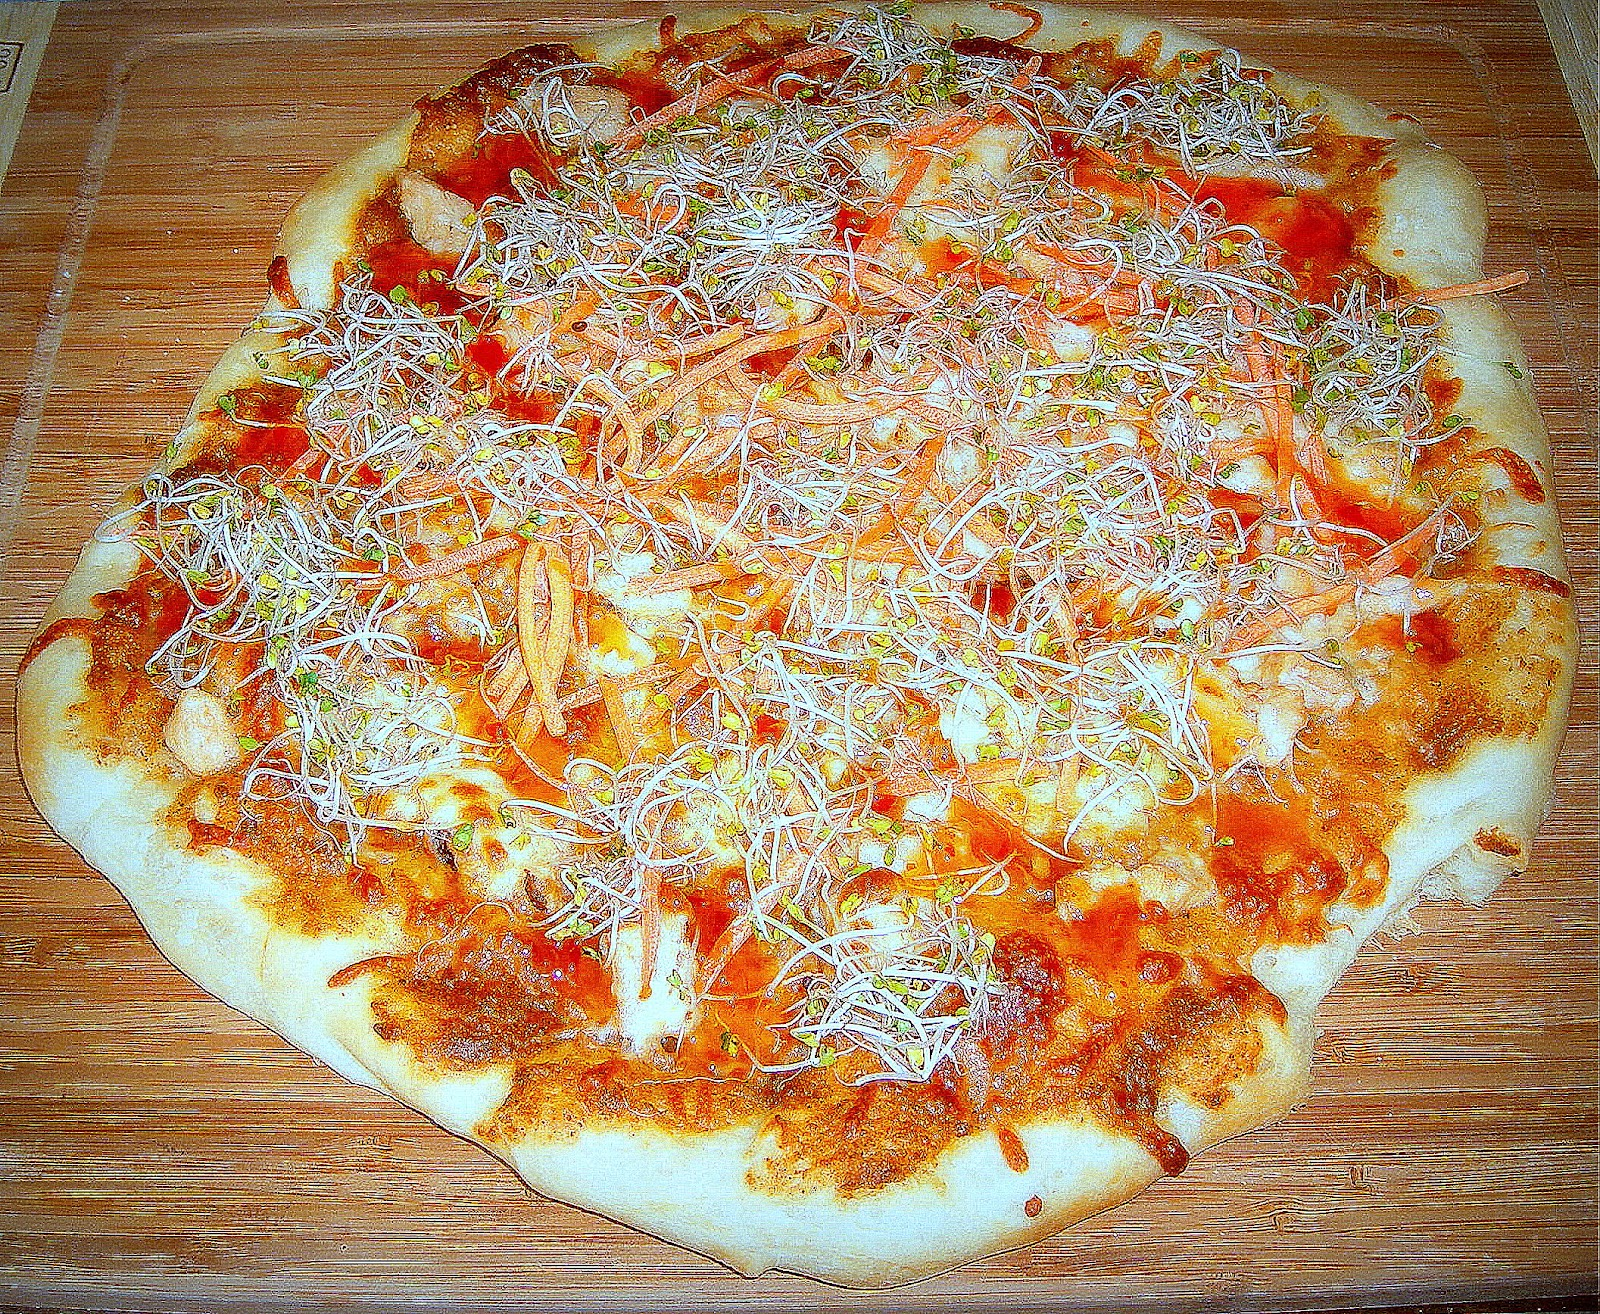 Thai Chicken Pizza With Sweet Chili Sauce Recipes — Dishmaps